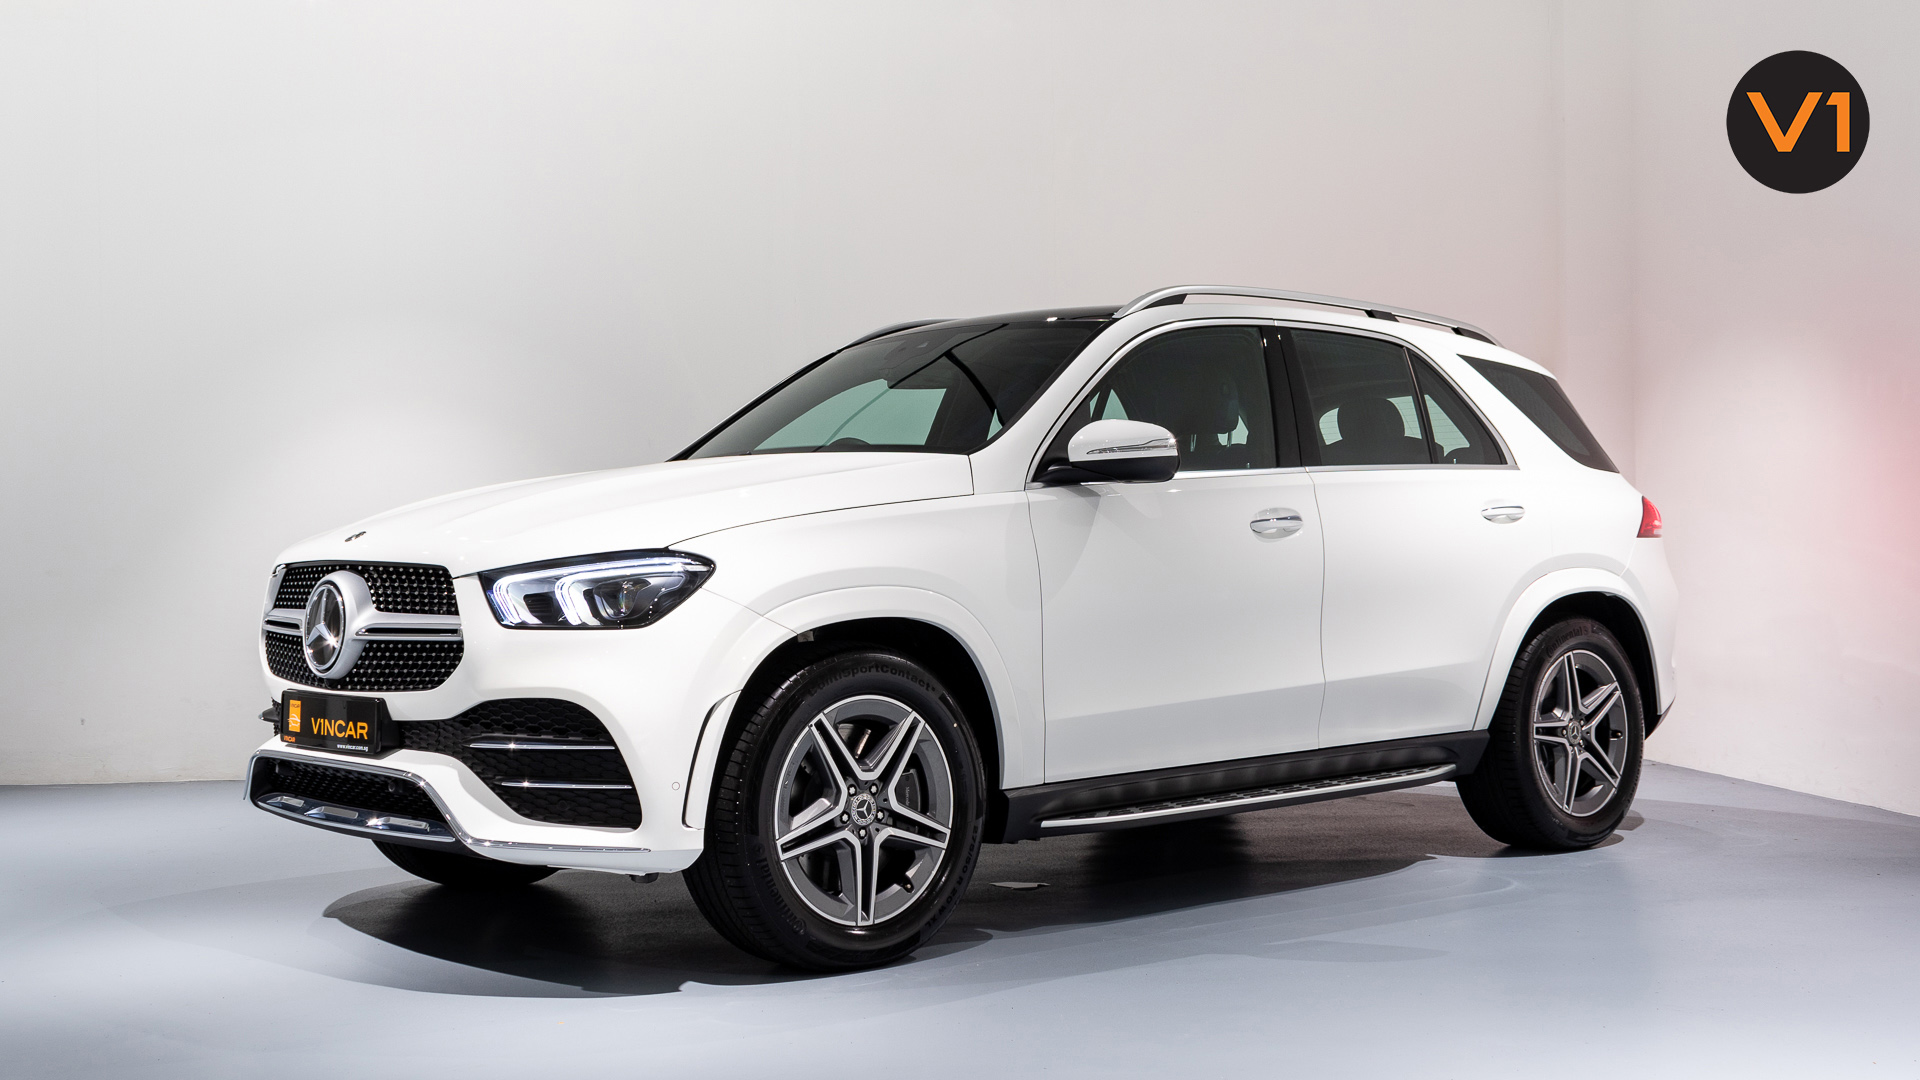 MERCEDES-BENZ GLE450 AMG 4MATIC LUXURY - Front Angle